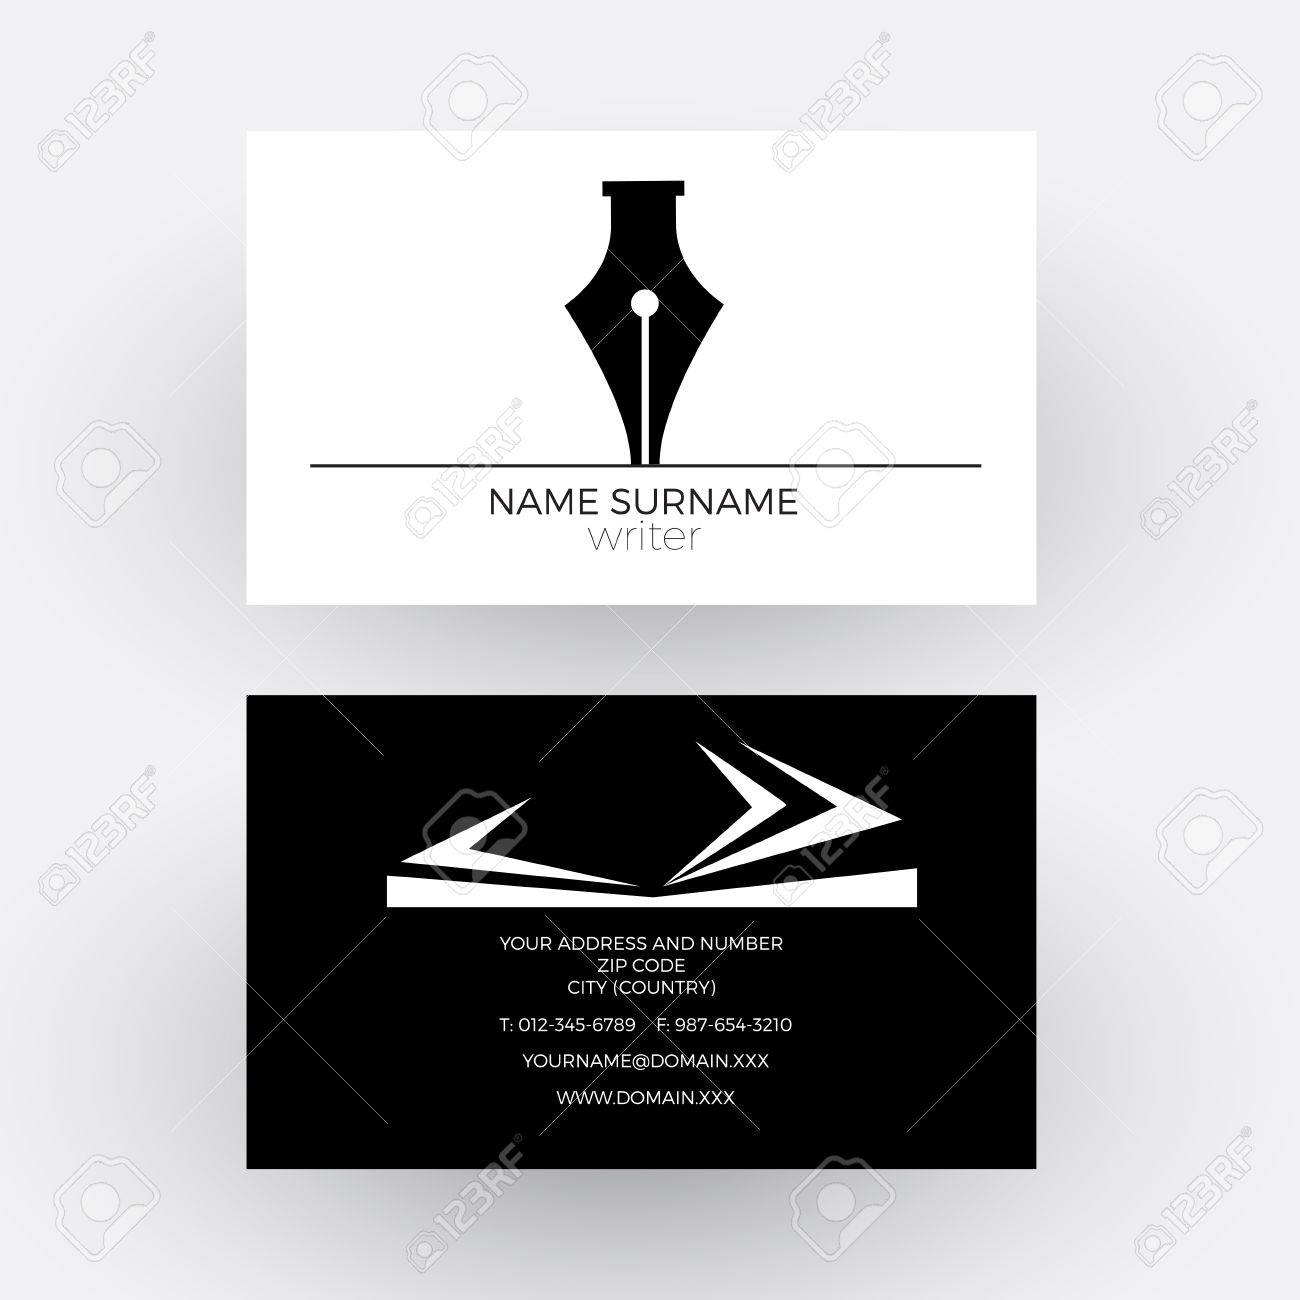 generous writer business card gallery business card ideas